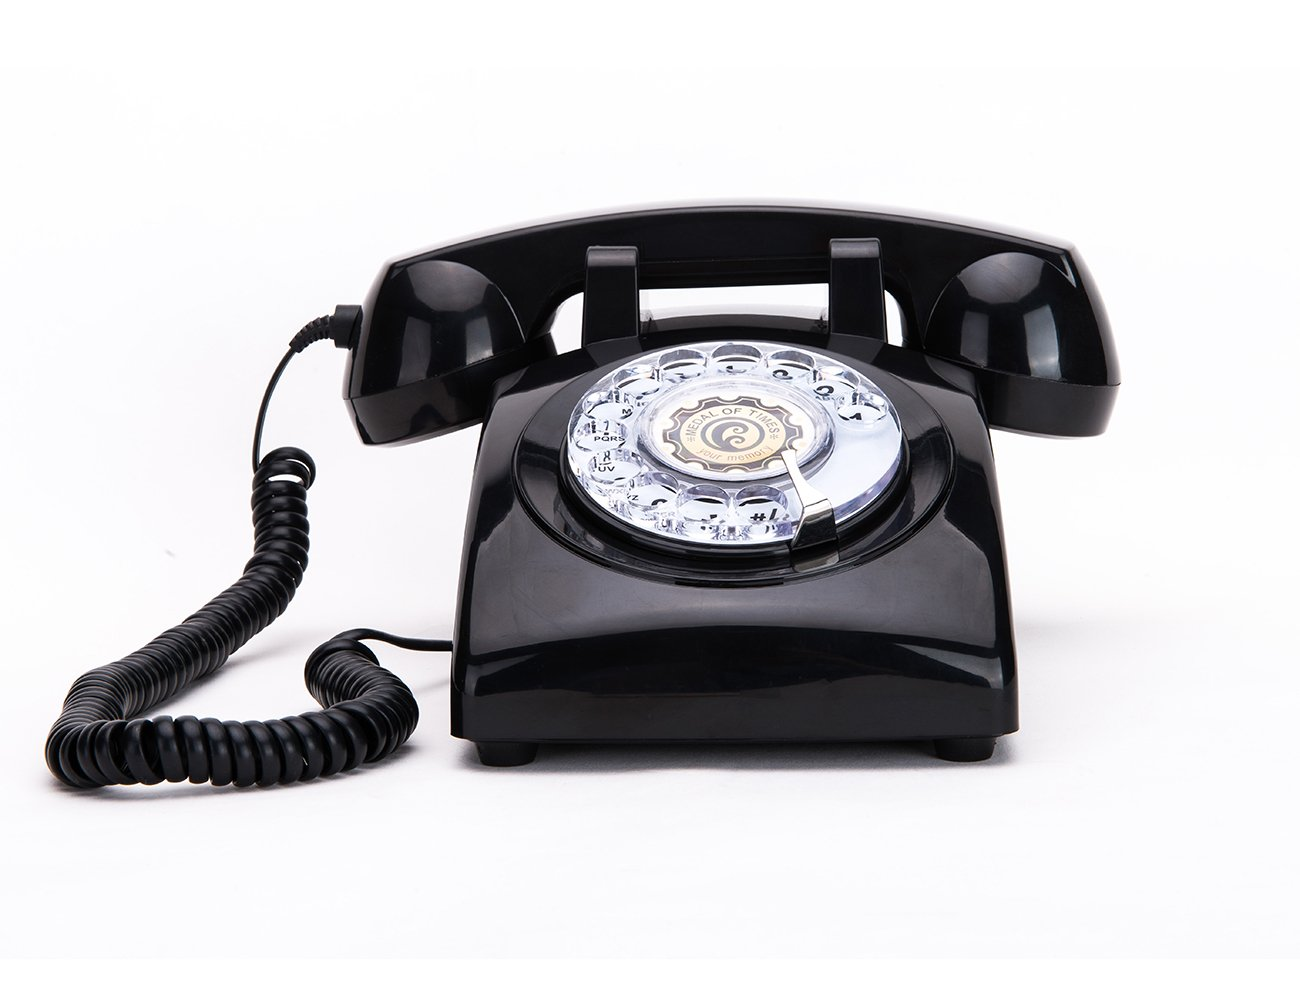 Rotary Dial Telephones Sangyn 1960'S Classic Old Style Retro Landline Desk Telephone,Black by Sangyn